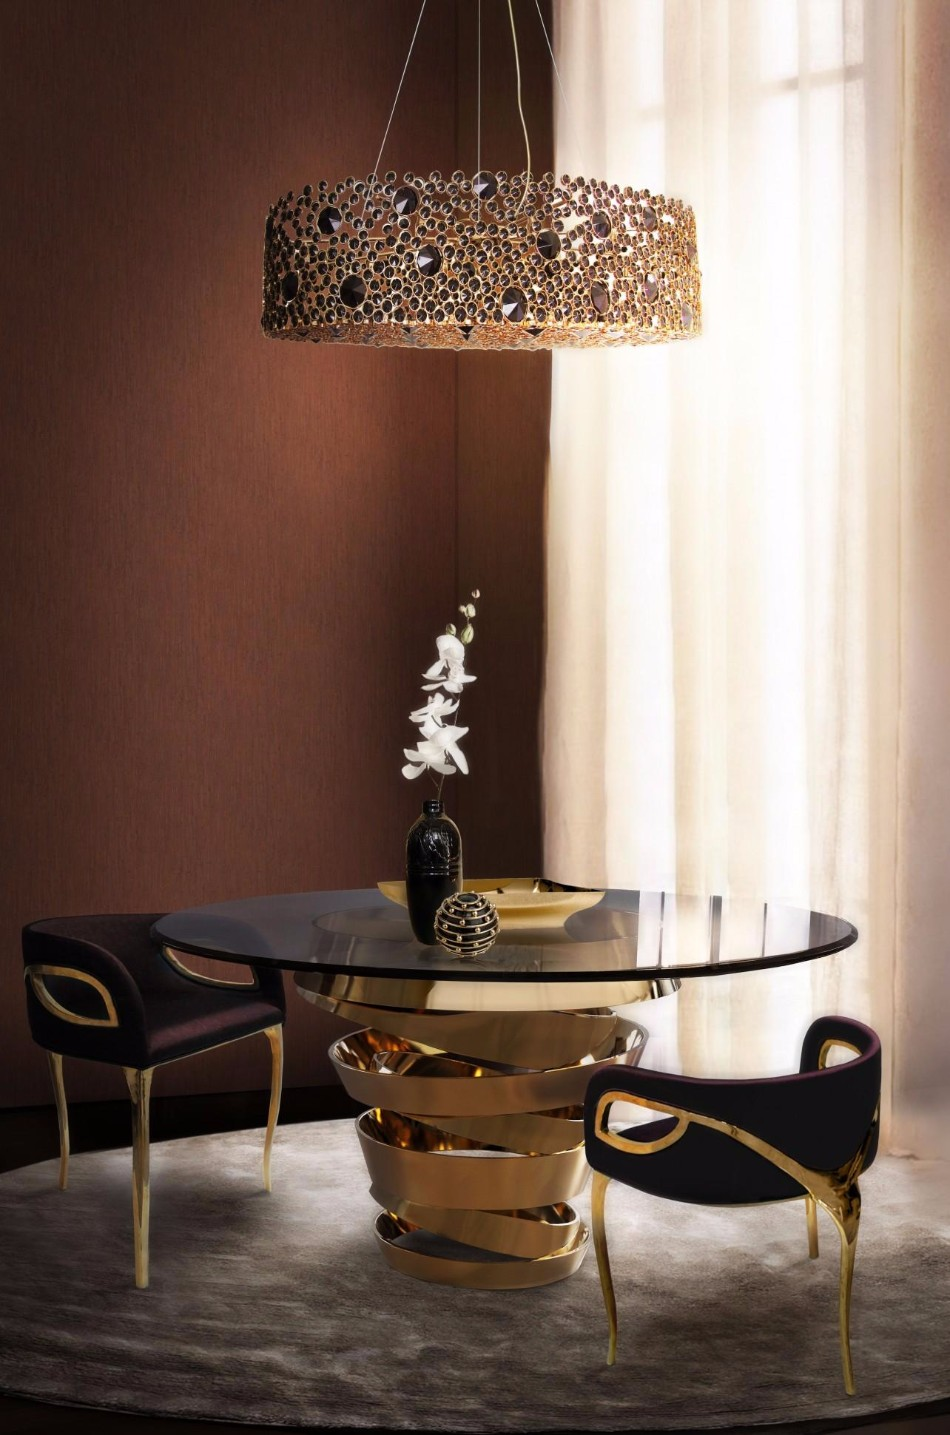 10 Gold Dining Tables For The Most Luxury Interiors | www.bocadolobo.com #moderndiningtables #diningtables #luxurydiningtables #golddiningtables #goldfurniture #diningroom #thediningroom #diningarea #diningareadesign #luxury #luxurious @moderndiningtables Luxury Interiors 10 Gold Dining Tables For The Most Luxury Interiors 10 Gold Dining Tables For The Most Luxury Interiors 7